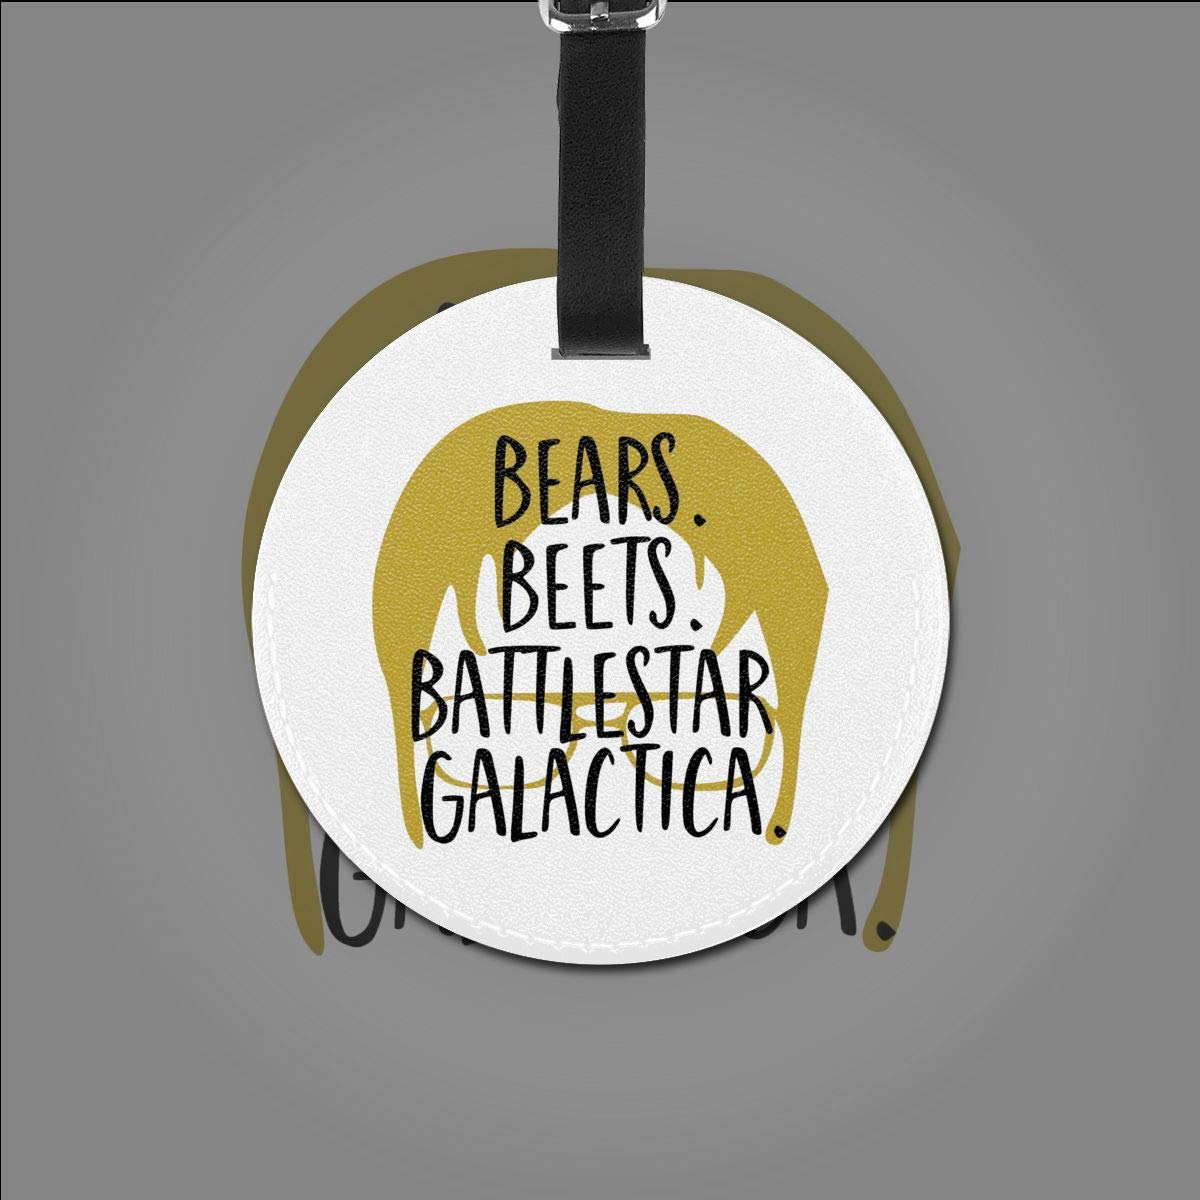 Bears Beets Battlestar Galactica Travel Leather Round Luggage Tags Suitcase Labels Bag